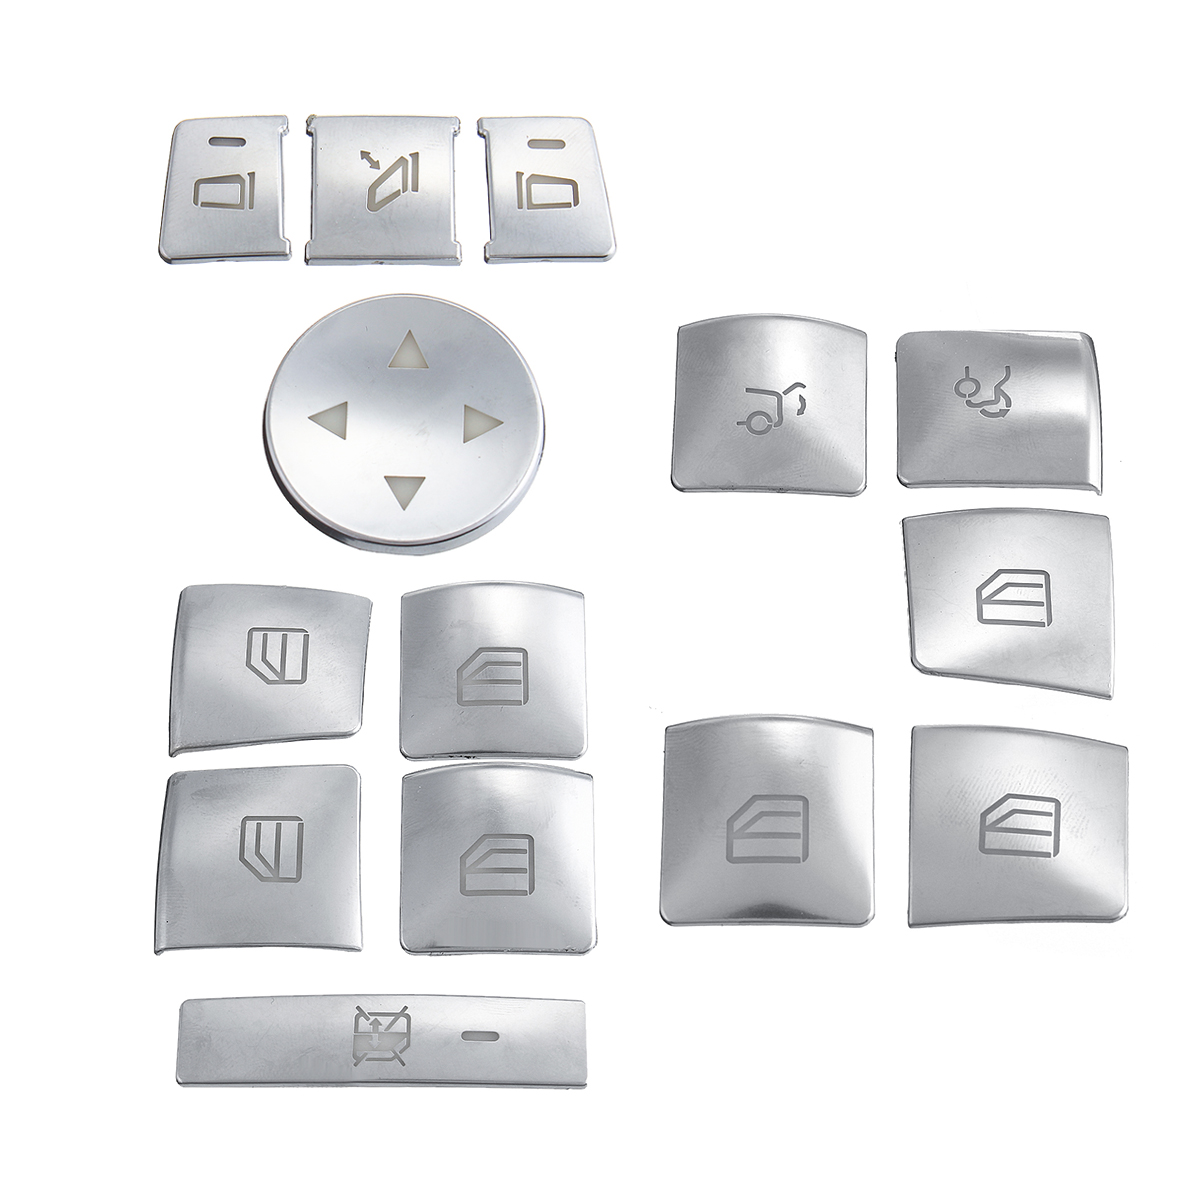 14 pcs/set Car Window Lift Button Cover for Mercedes Benz A/B/C